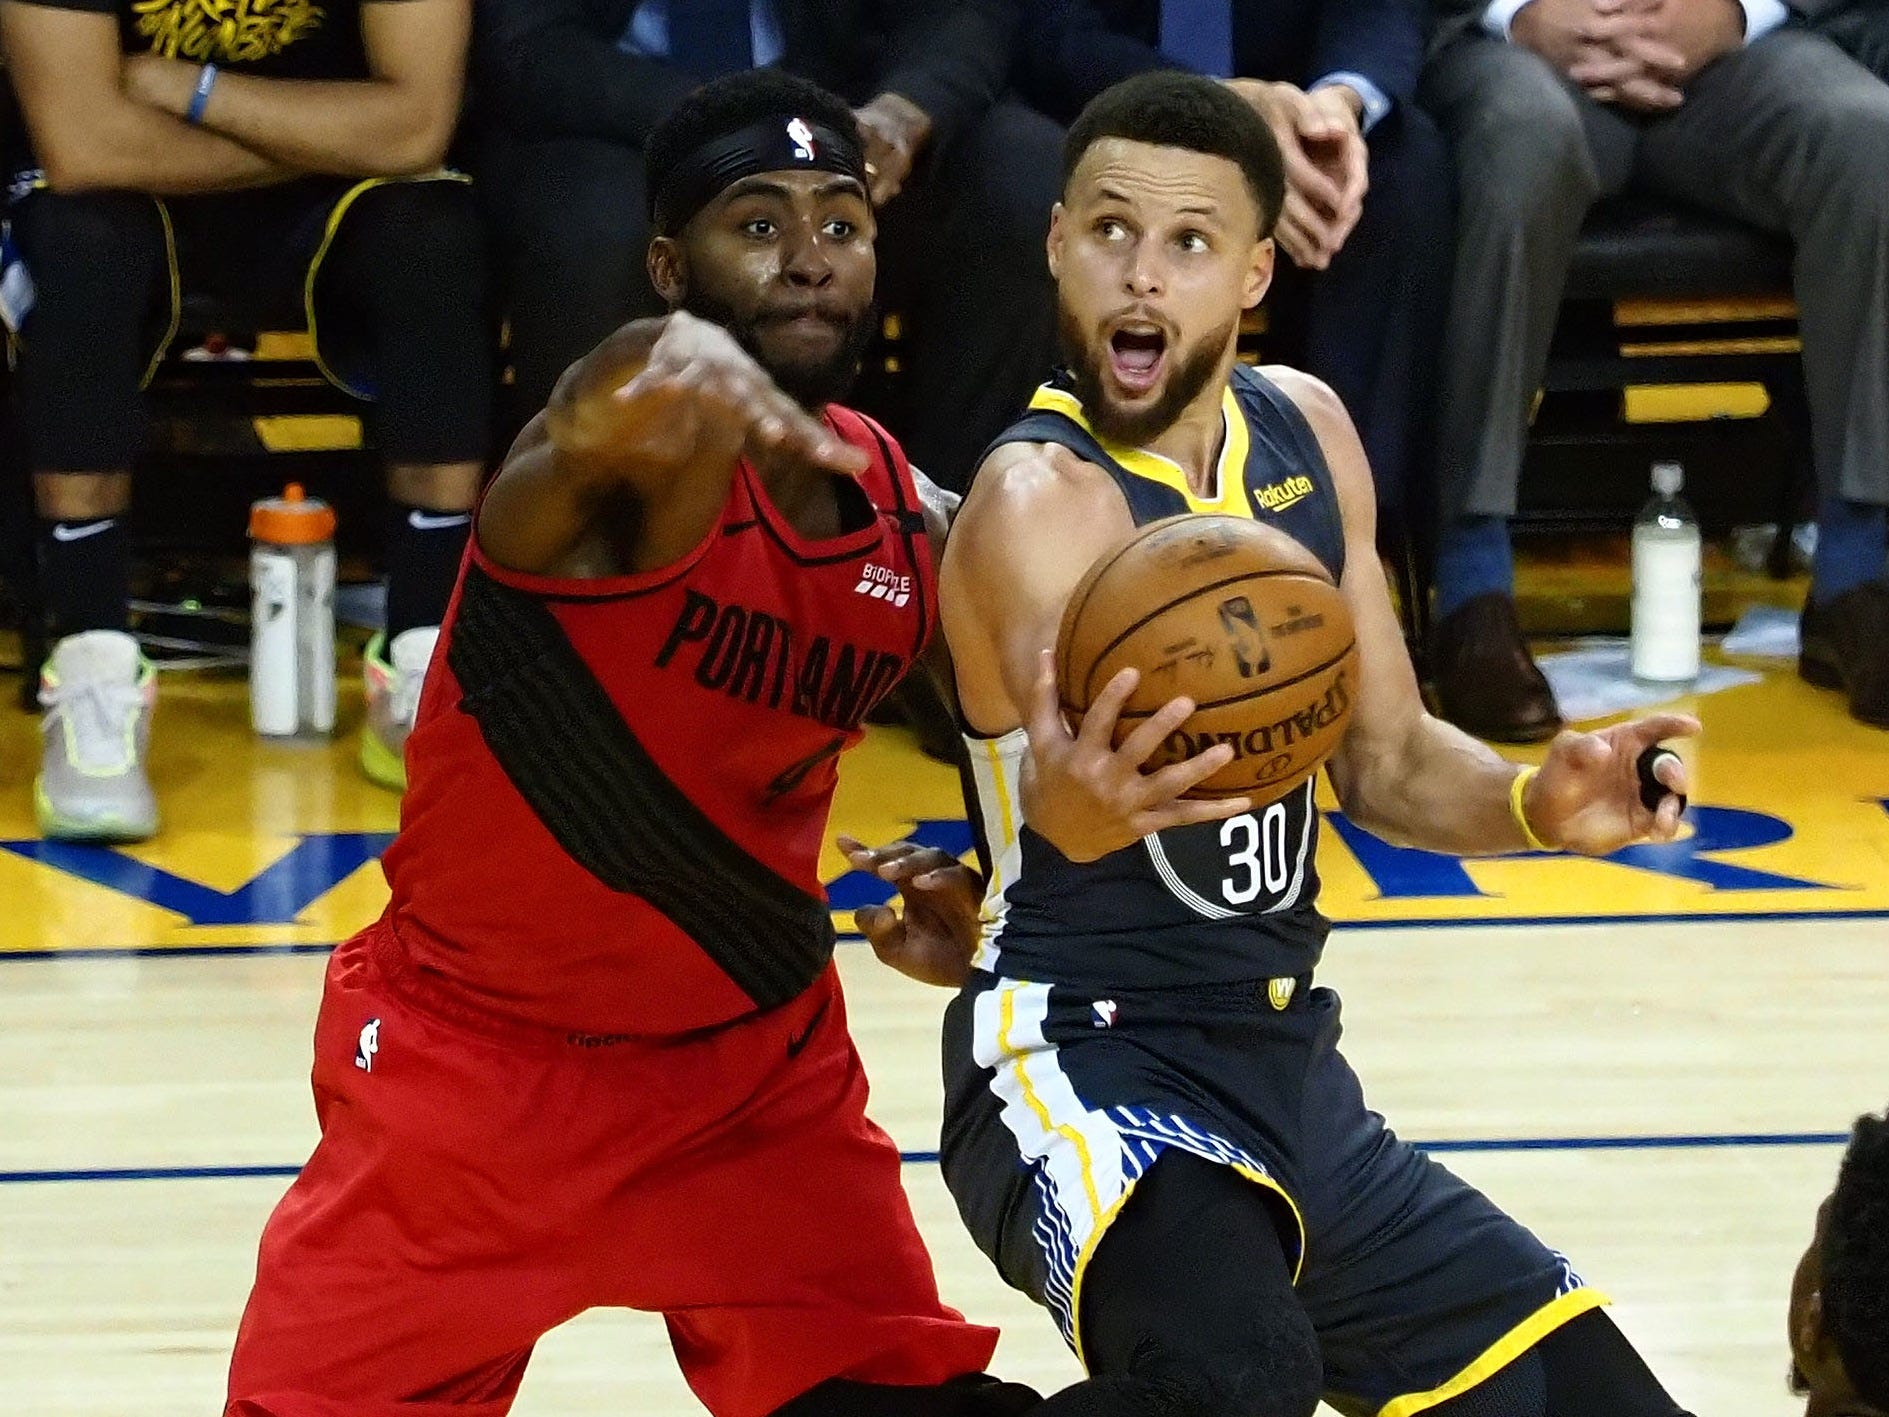 May 16: Warriors guard Stephen Curry (30) drives to the bucket against Blazers defender Moe Harkless (4) during Game 2 in Oakland.